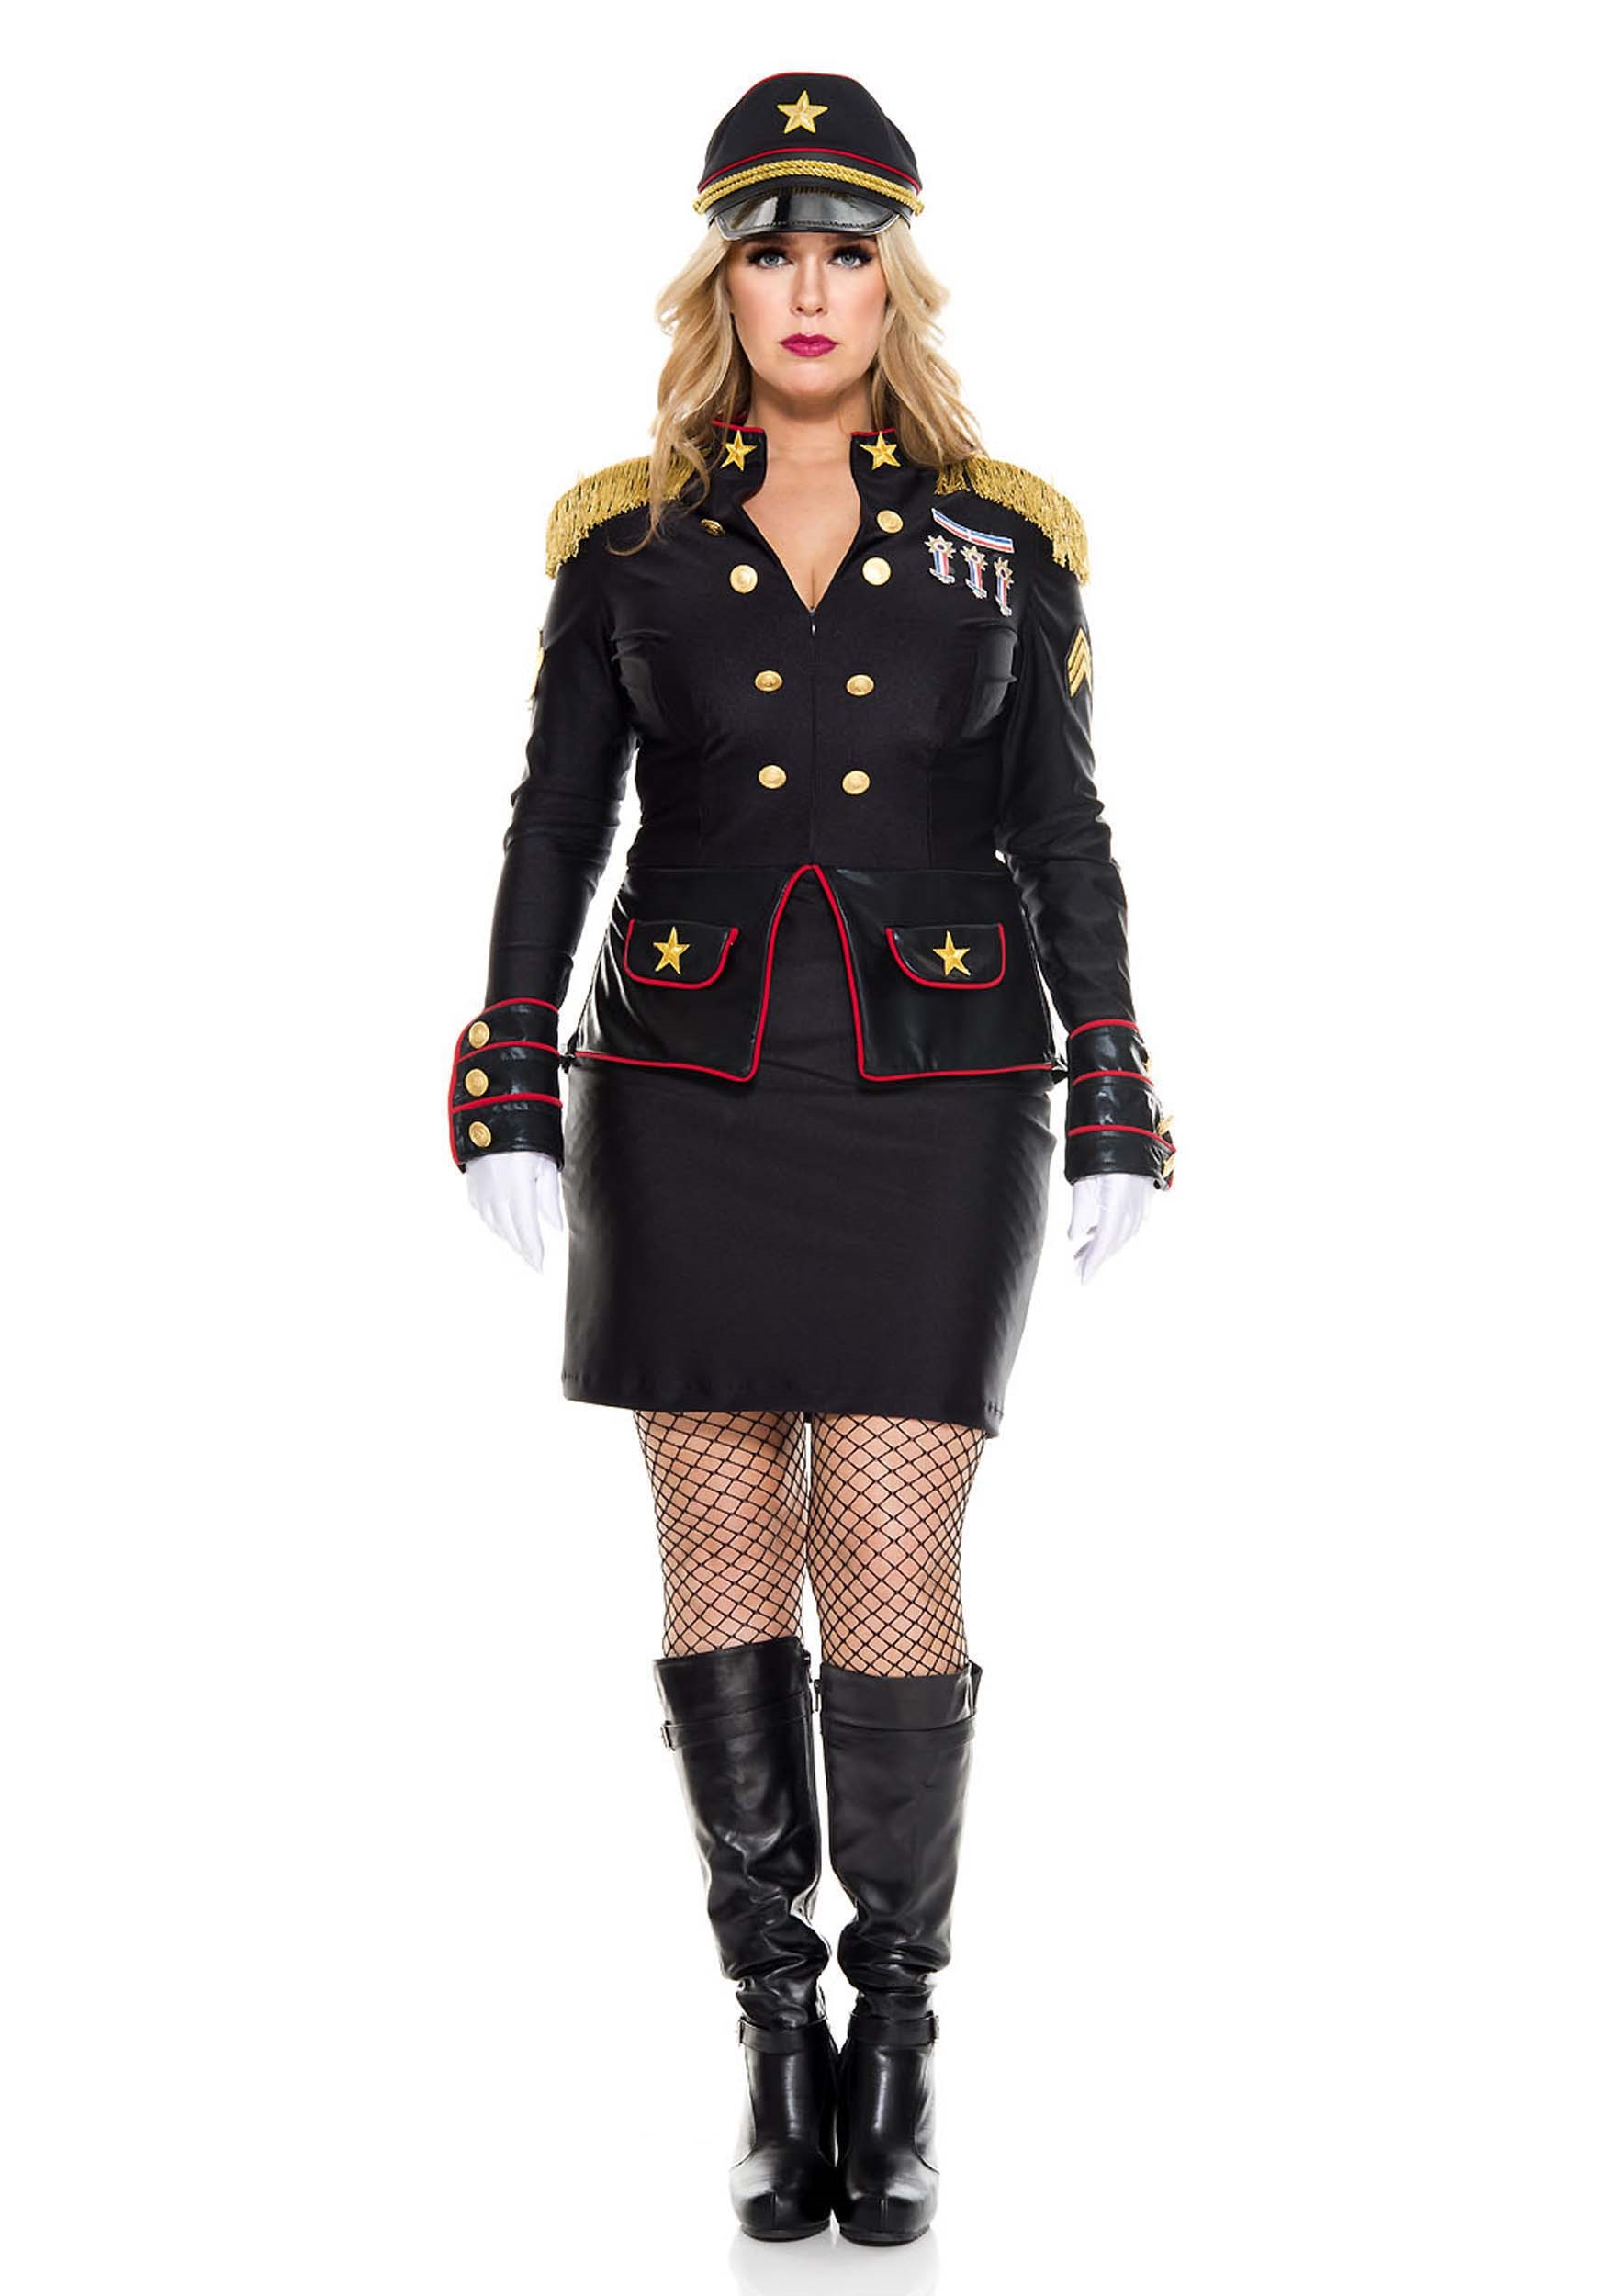 Plus Size Military General Costume for Women 1X/2X 3X/4X